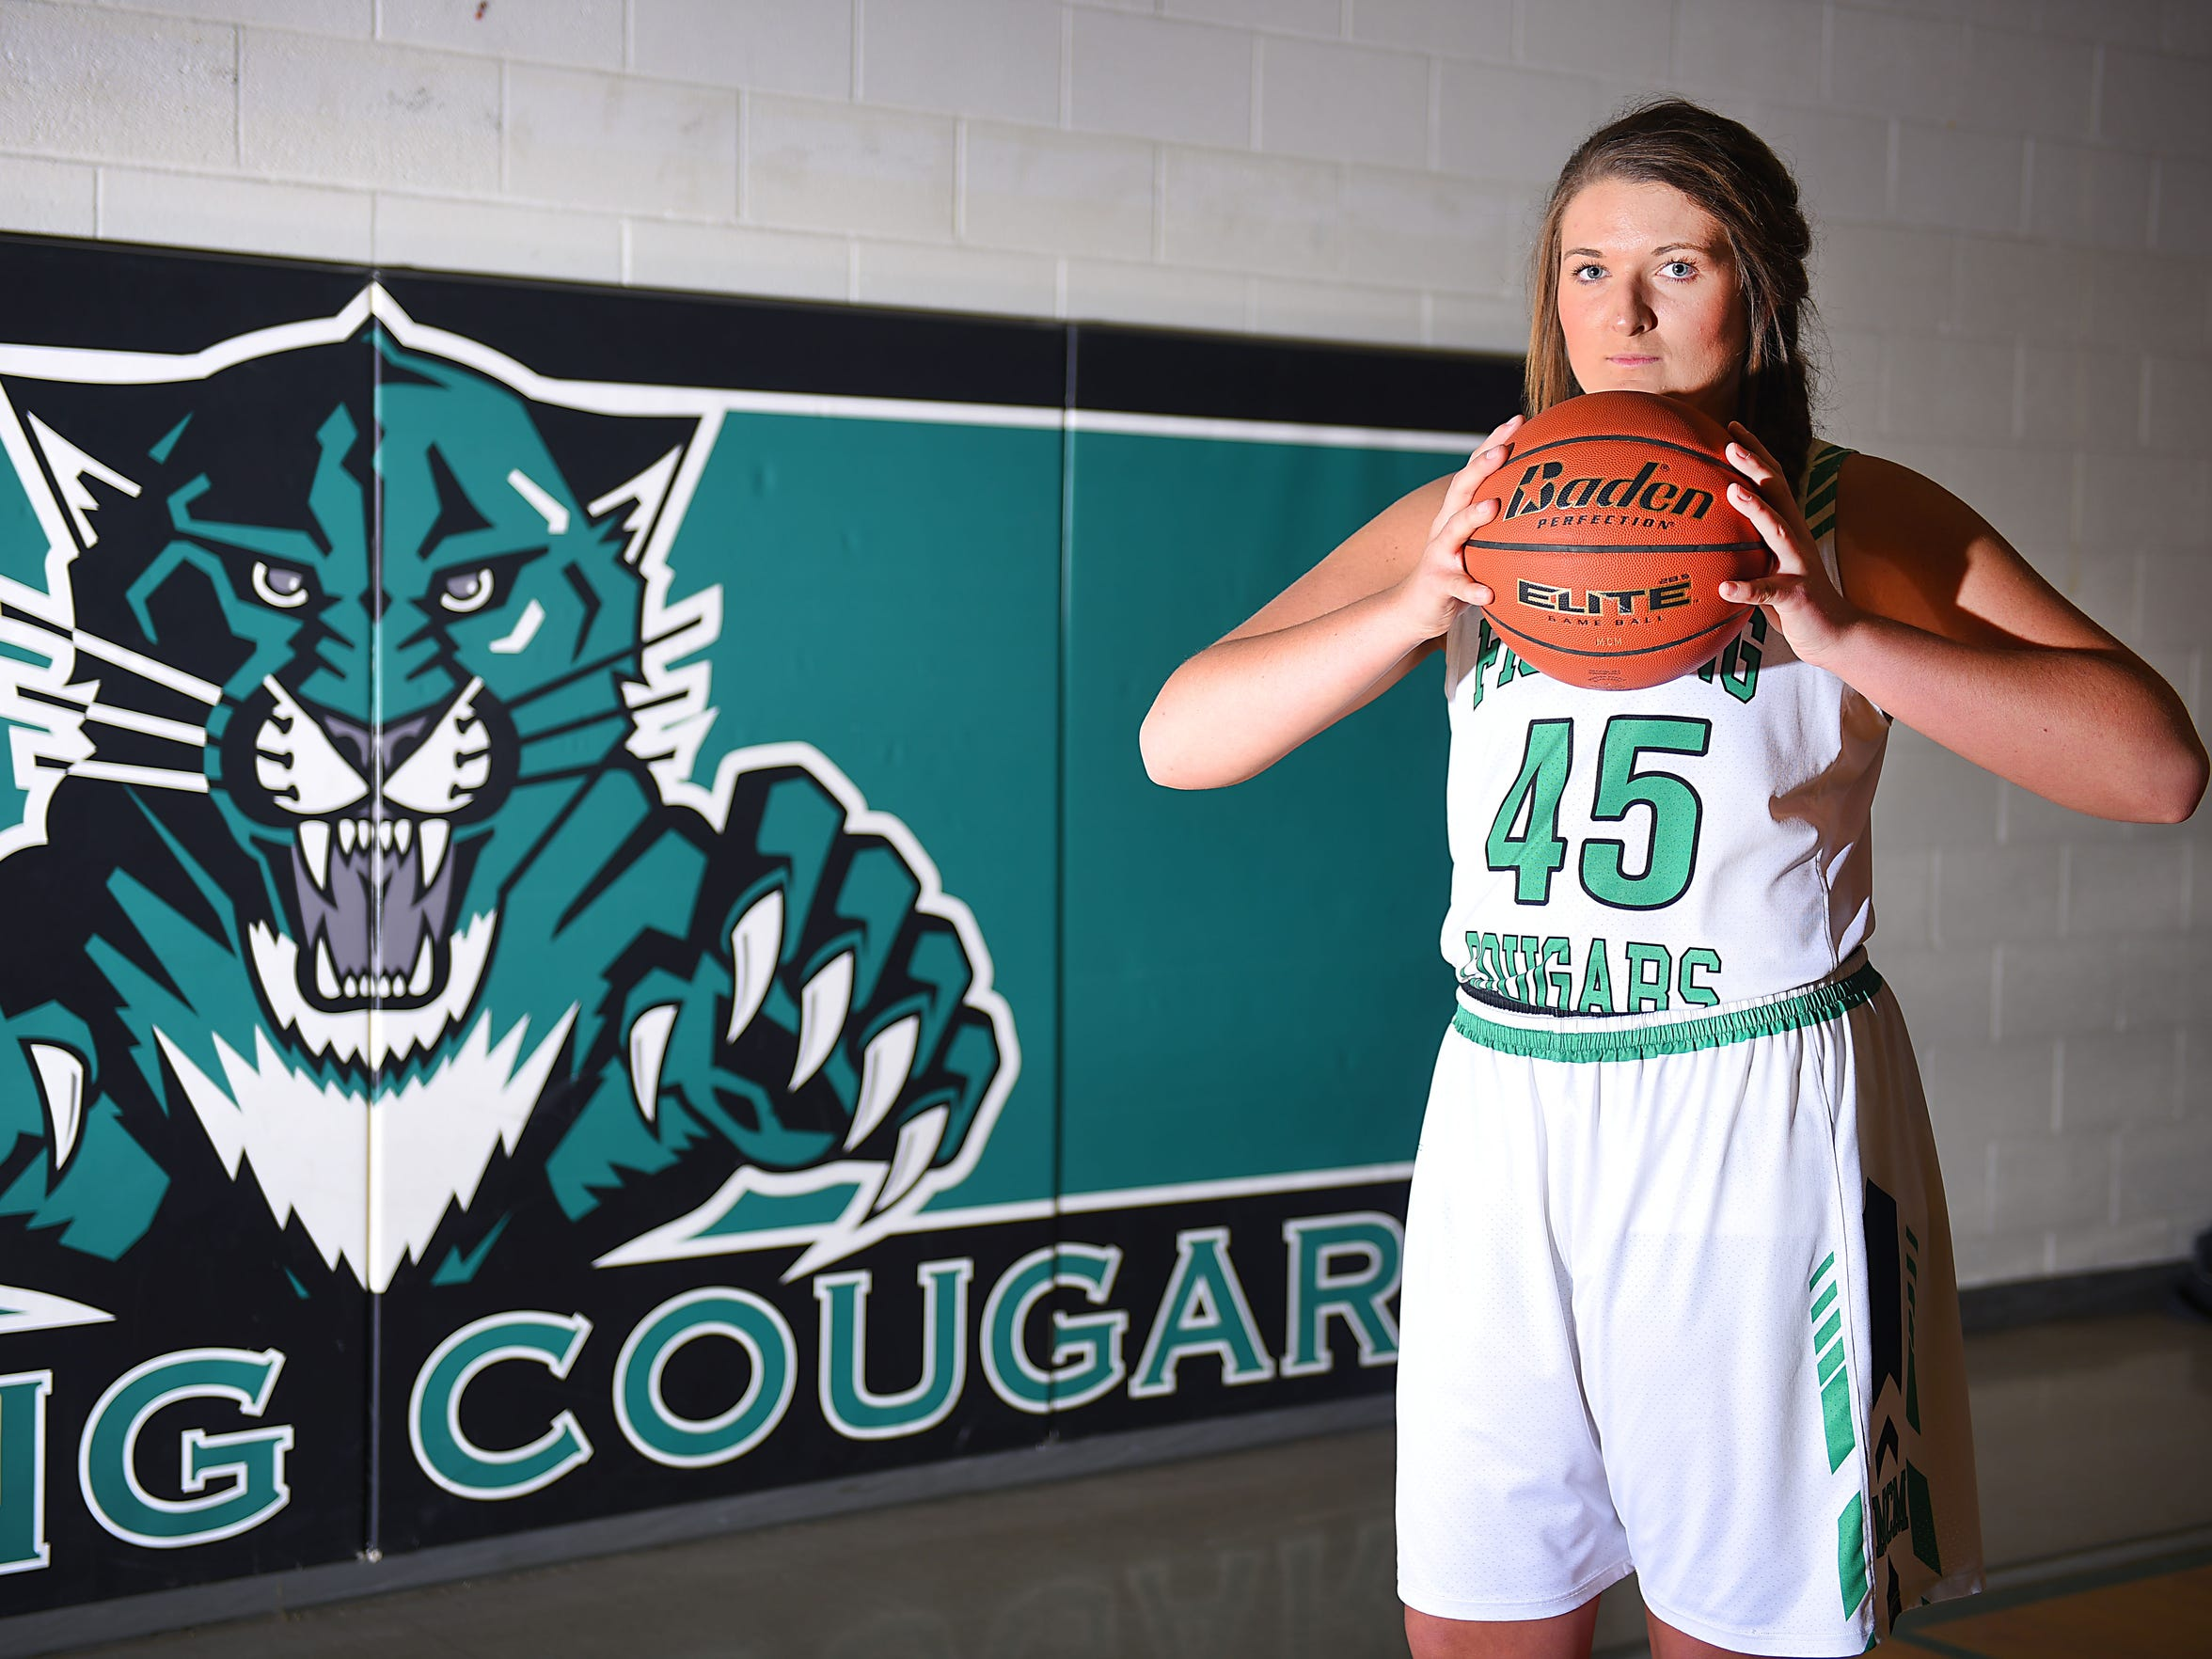 McCook Central/Montrose senior Morgan Koepsell for